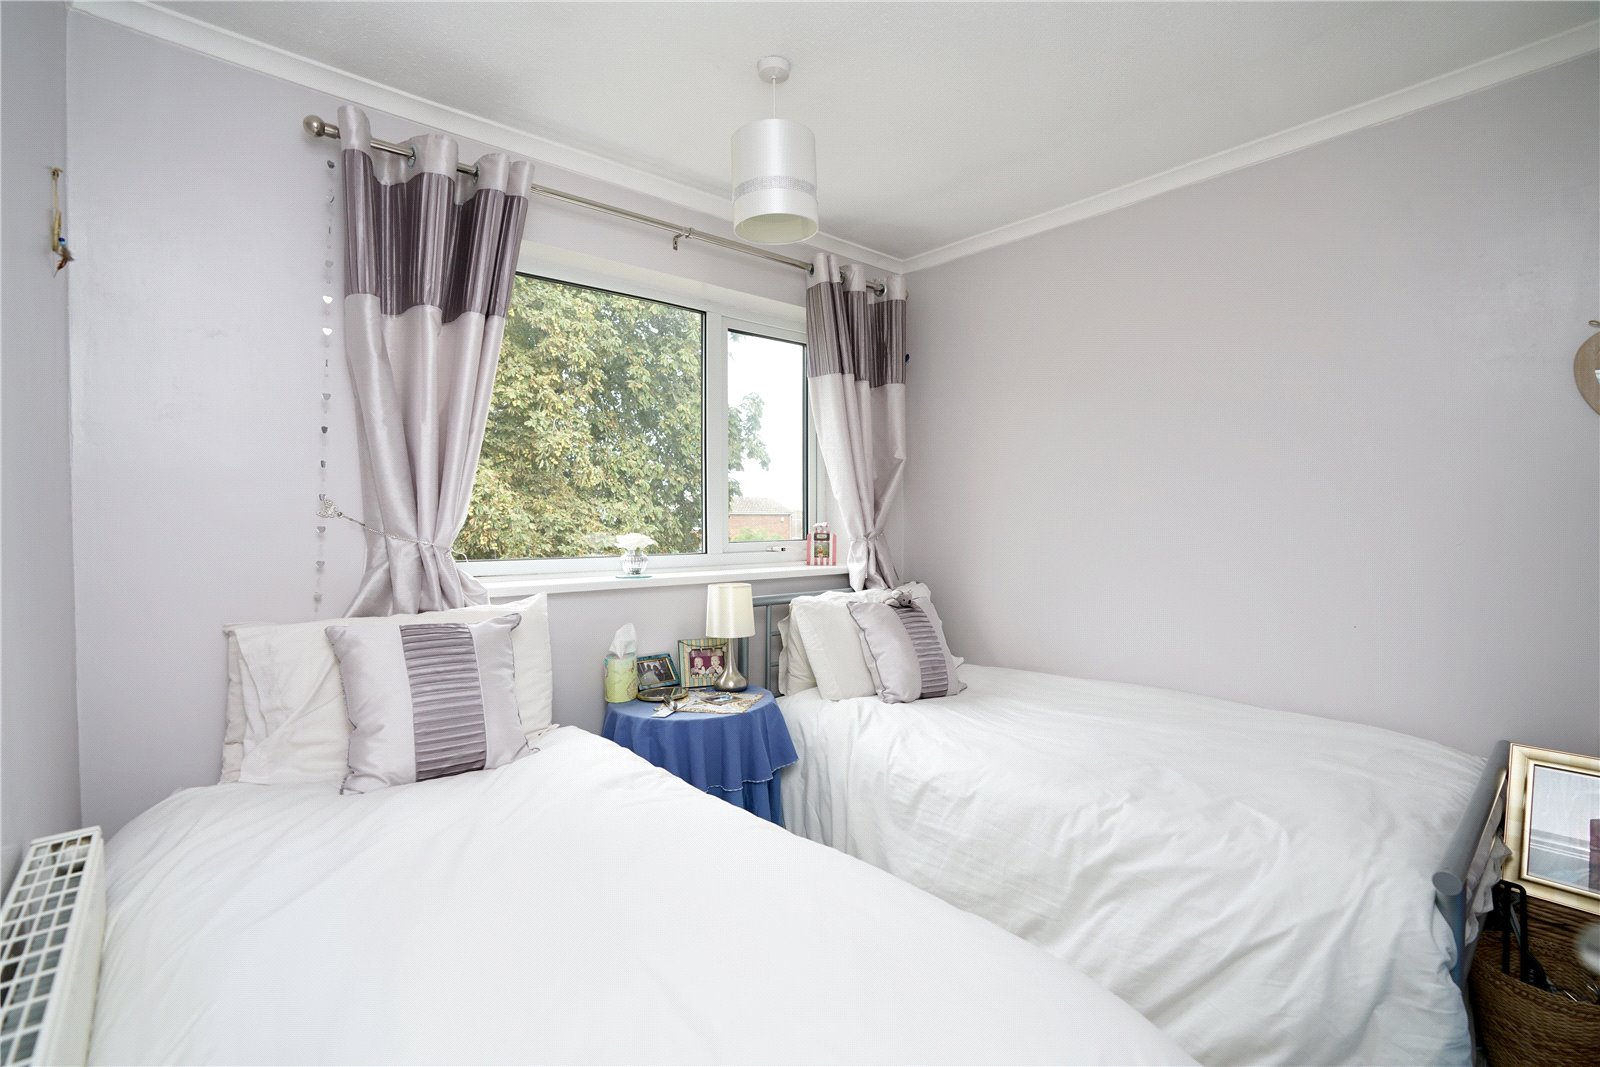 2 bed house for sale in Chestnut Walk, Little Paxton  - Property Image 8